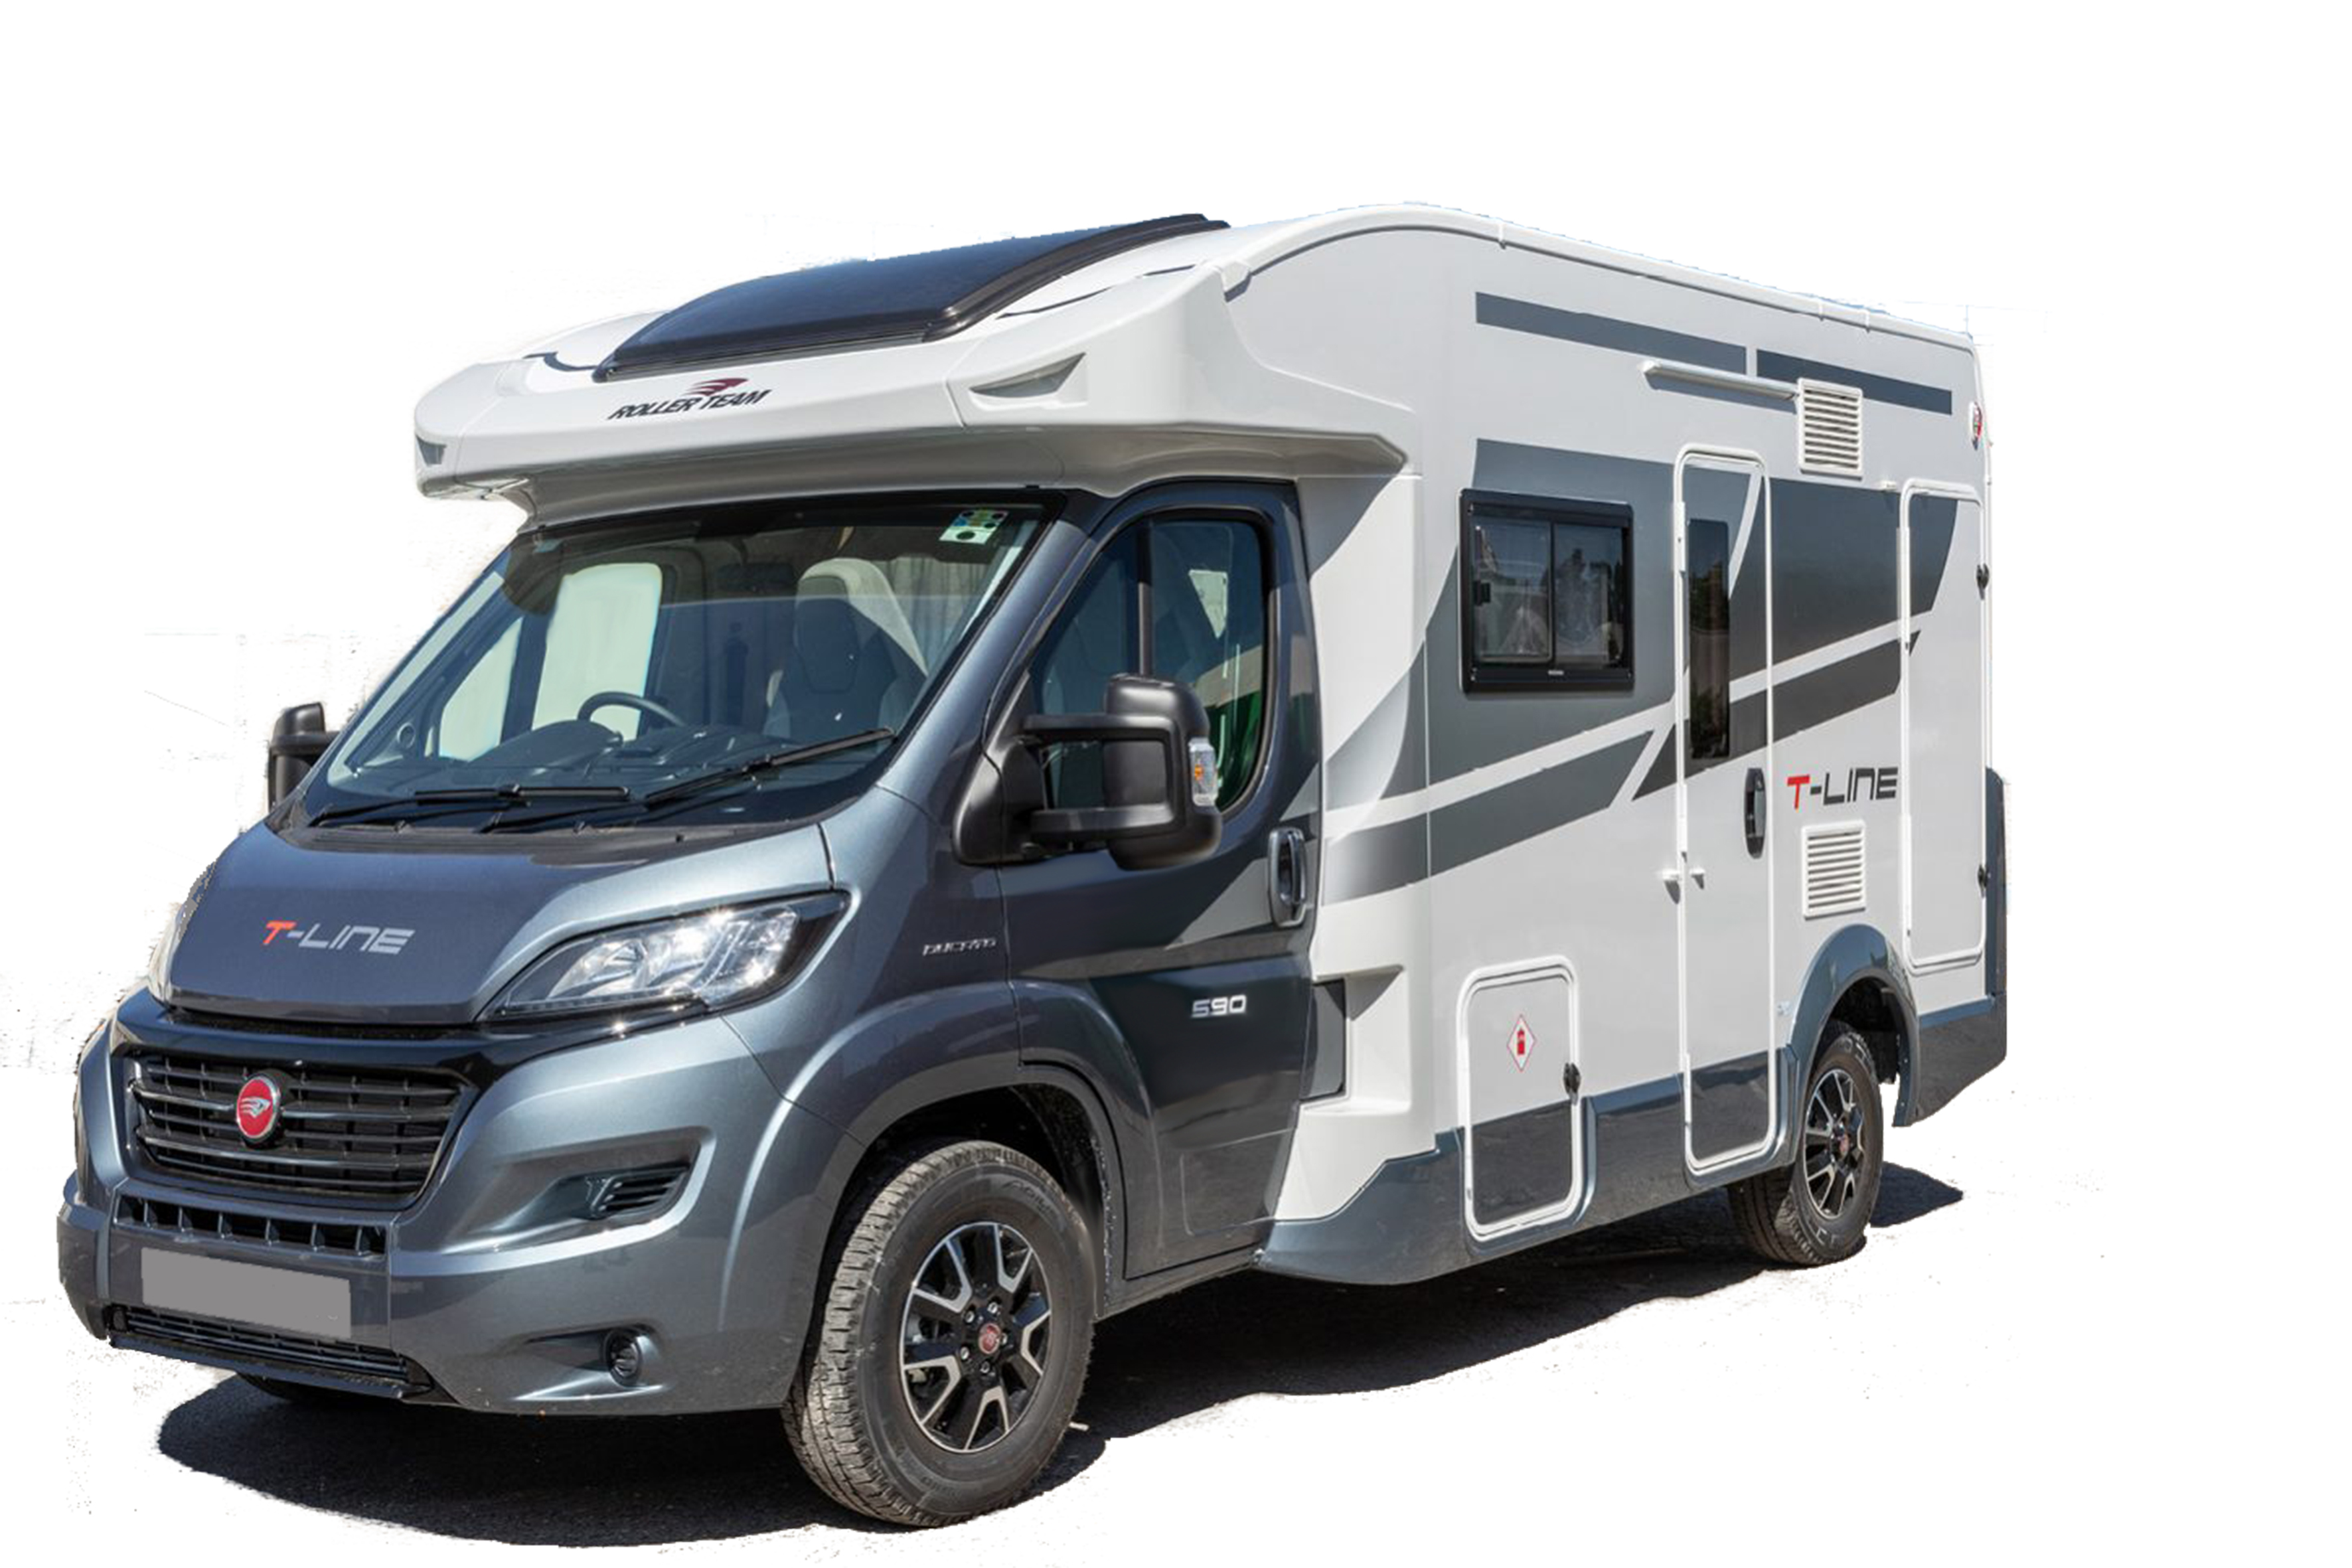 2020 Roller Team T-Line 590 (Automatic) New Motorhome external view